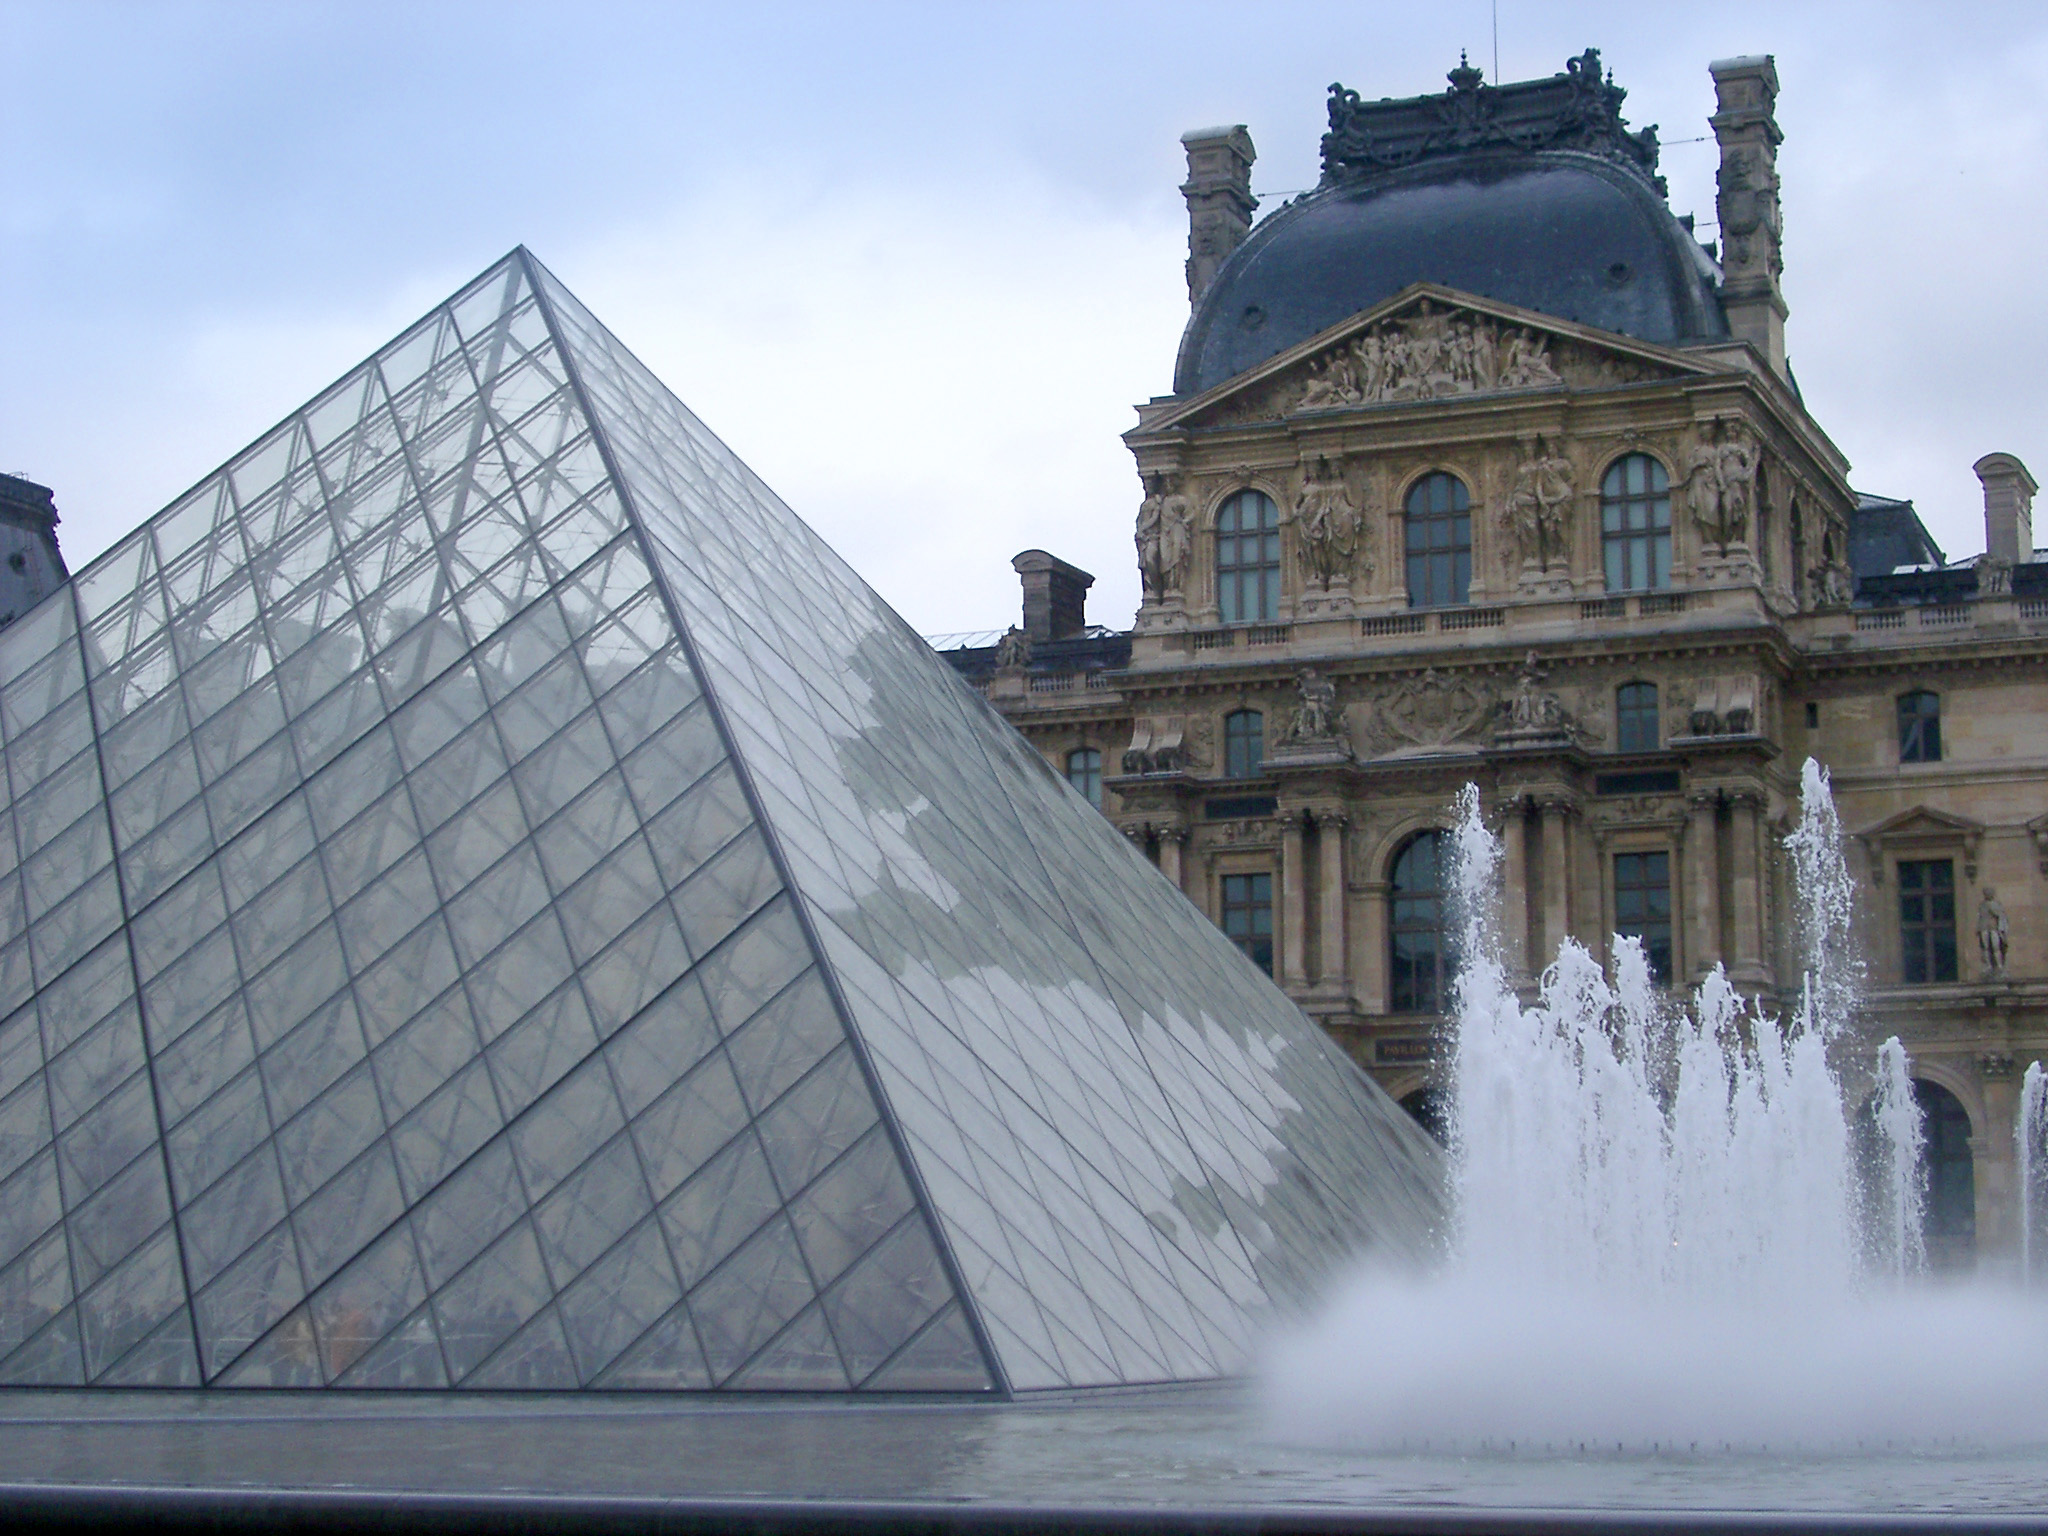 The glass pyramid at the Louvre, Paris with the ornamental fountains and external facade of the museum behind